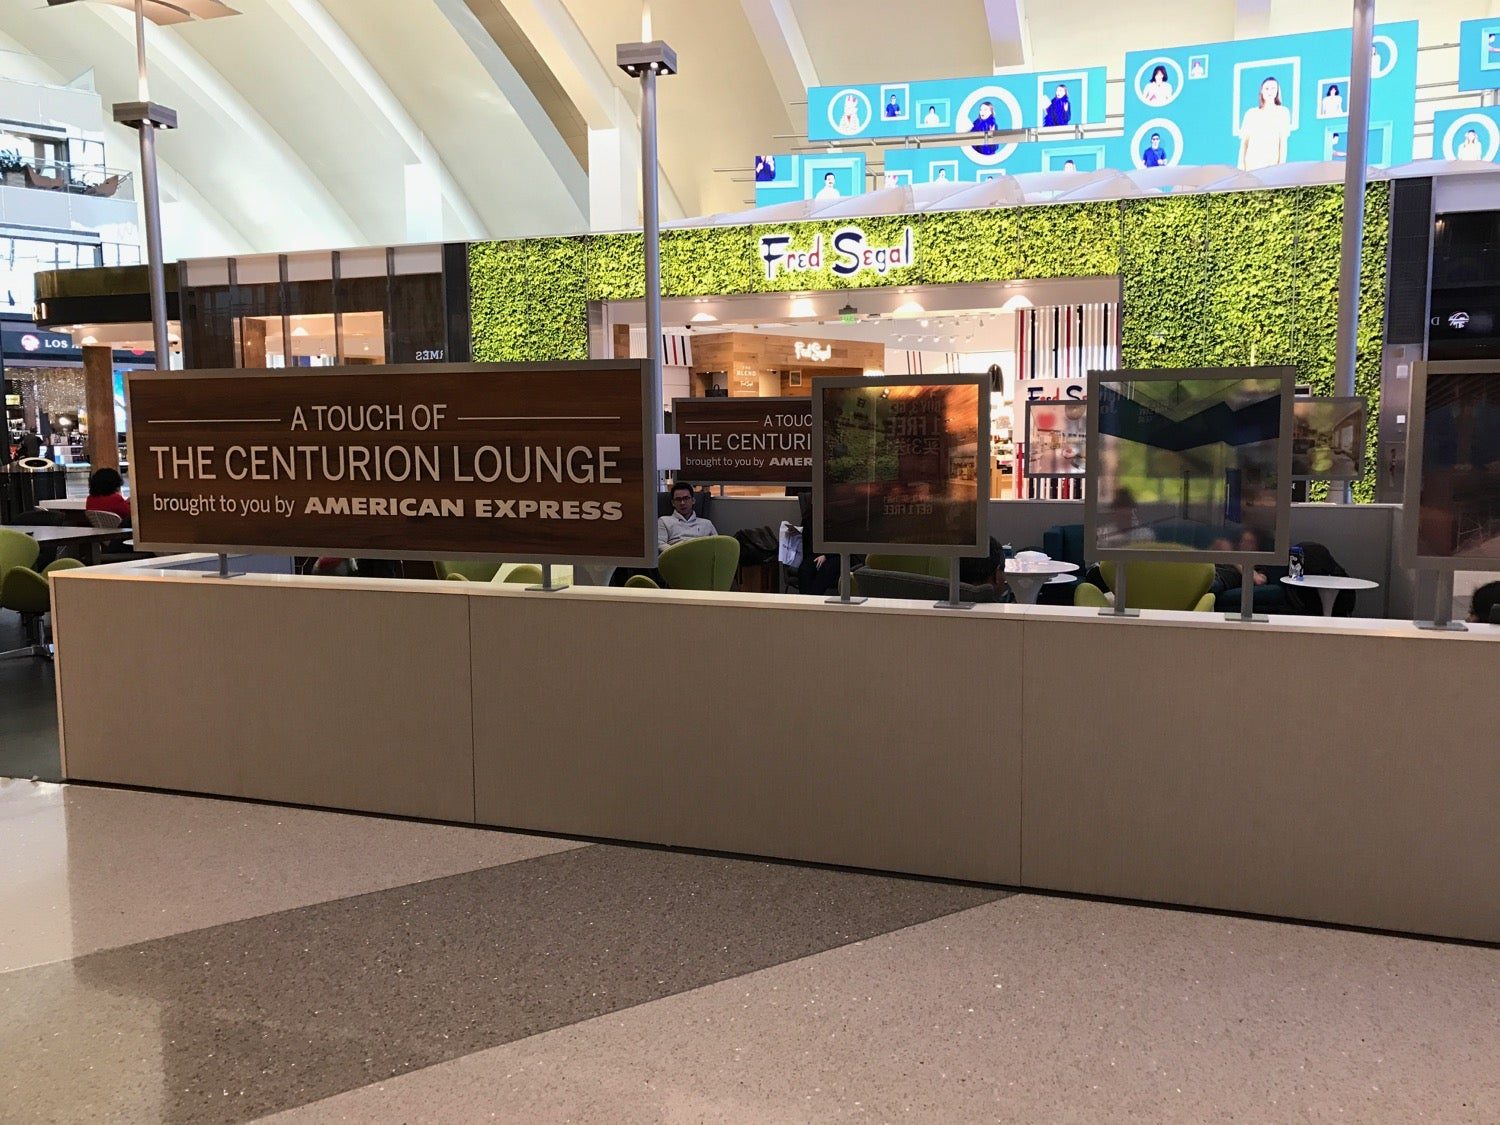 American Express Teased An Upcoming New Centurion Lounge Coming to LAX By Creating a Small Pop-Up Lounge. Luckily the Permanent Lounge Will be Nearly 14,000 Square Feet With All The Amenities of a Centurion Lounge.